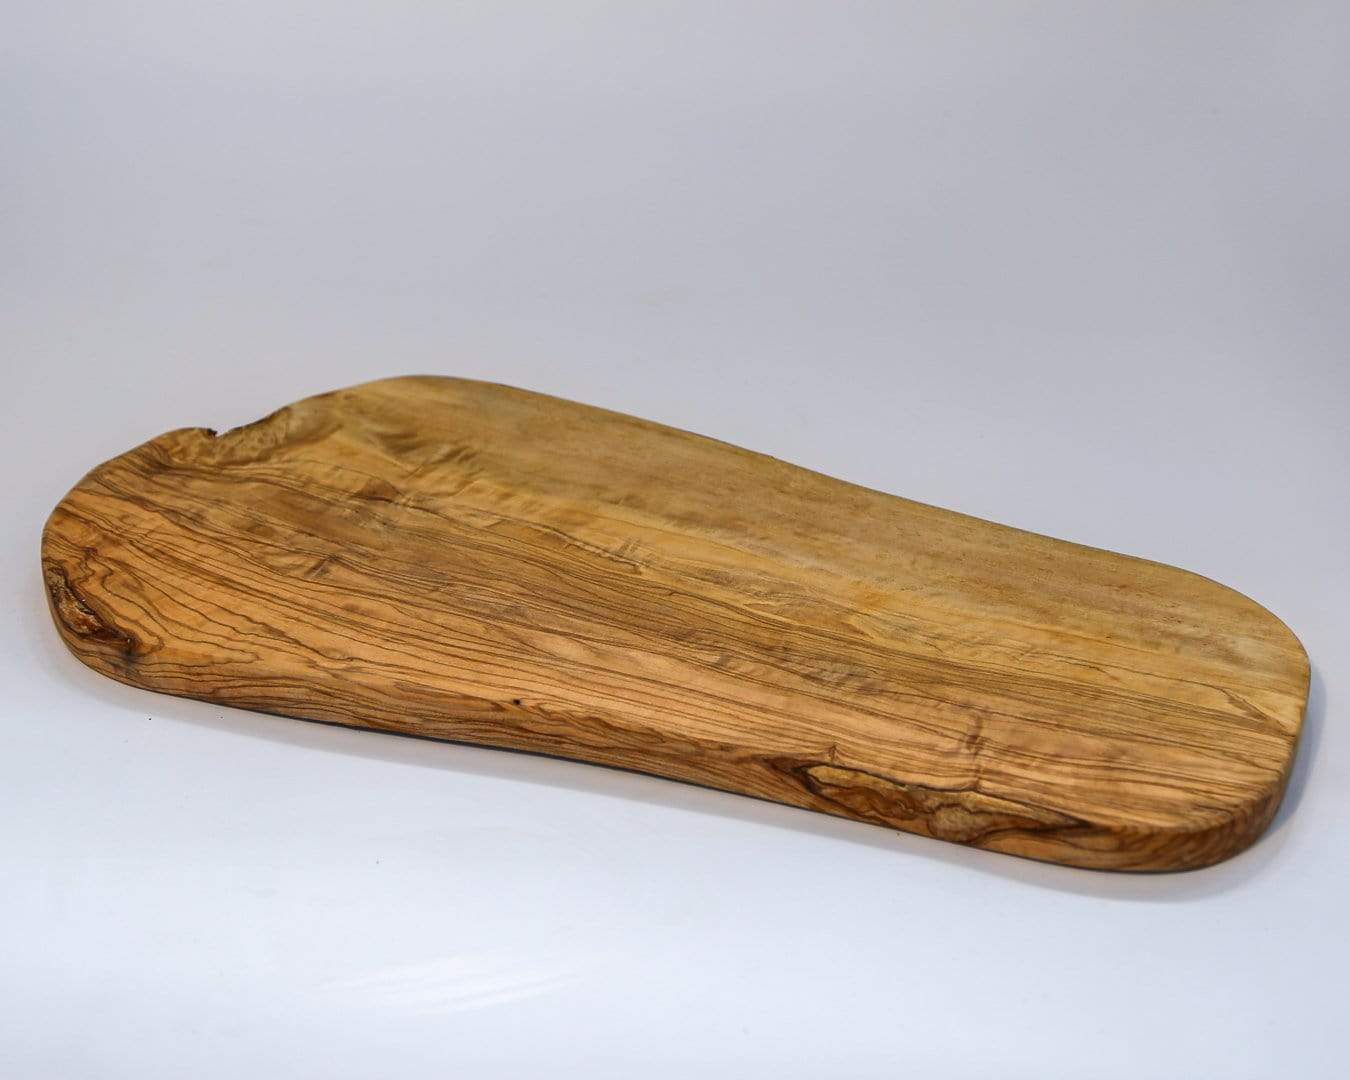 Shams El Balad Tableware Olive Wood Board